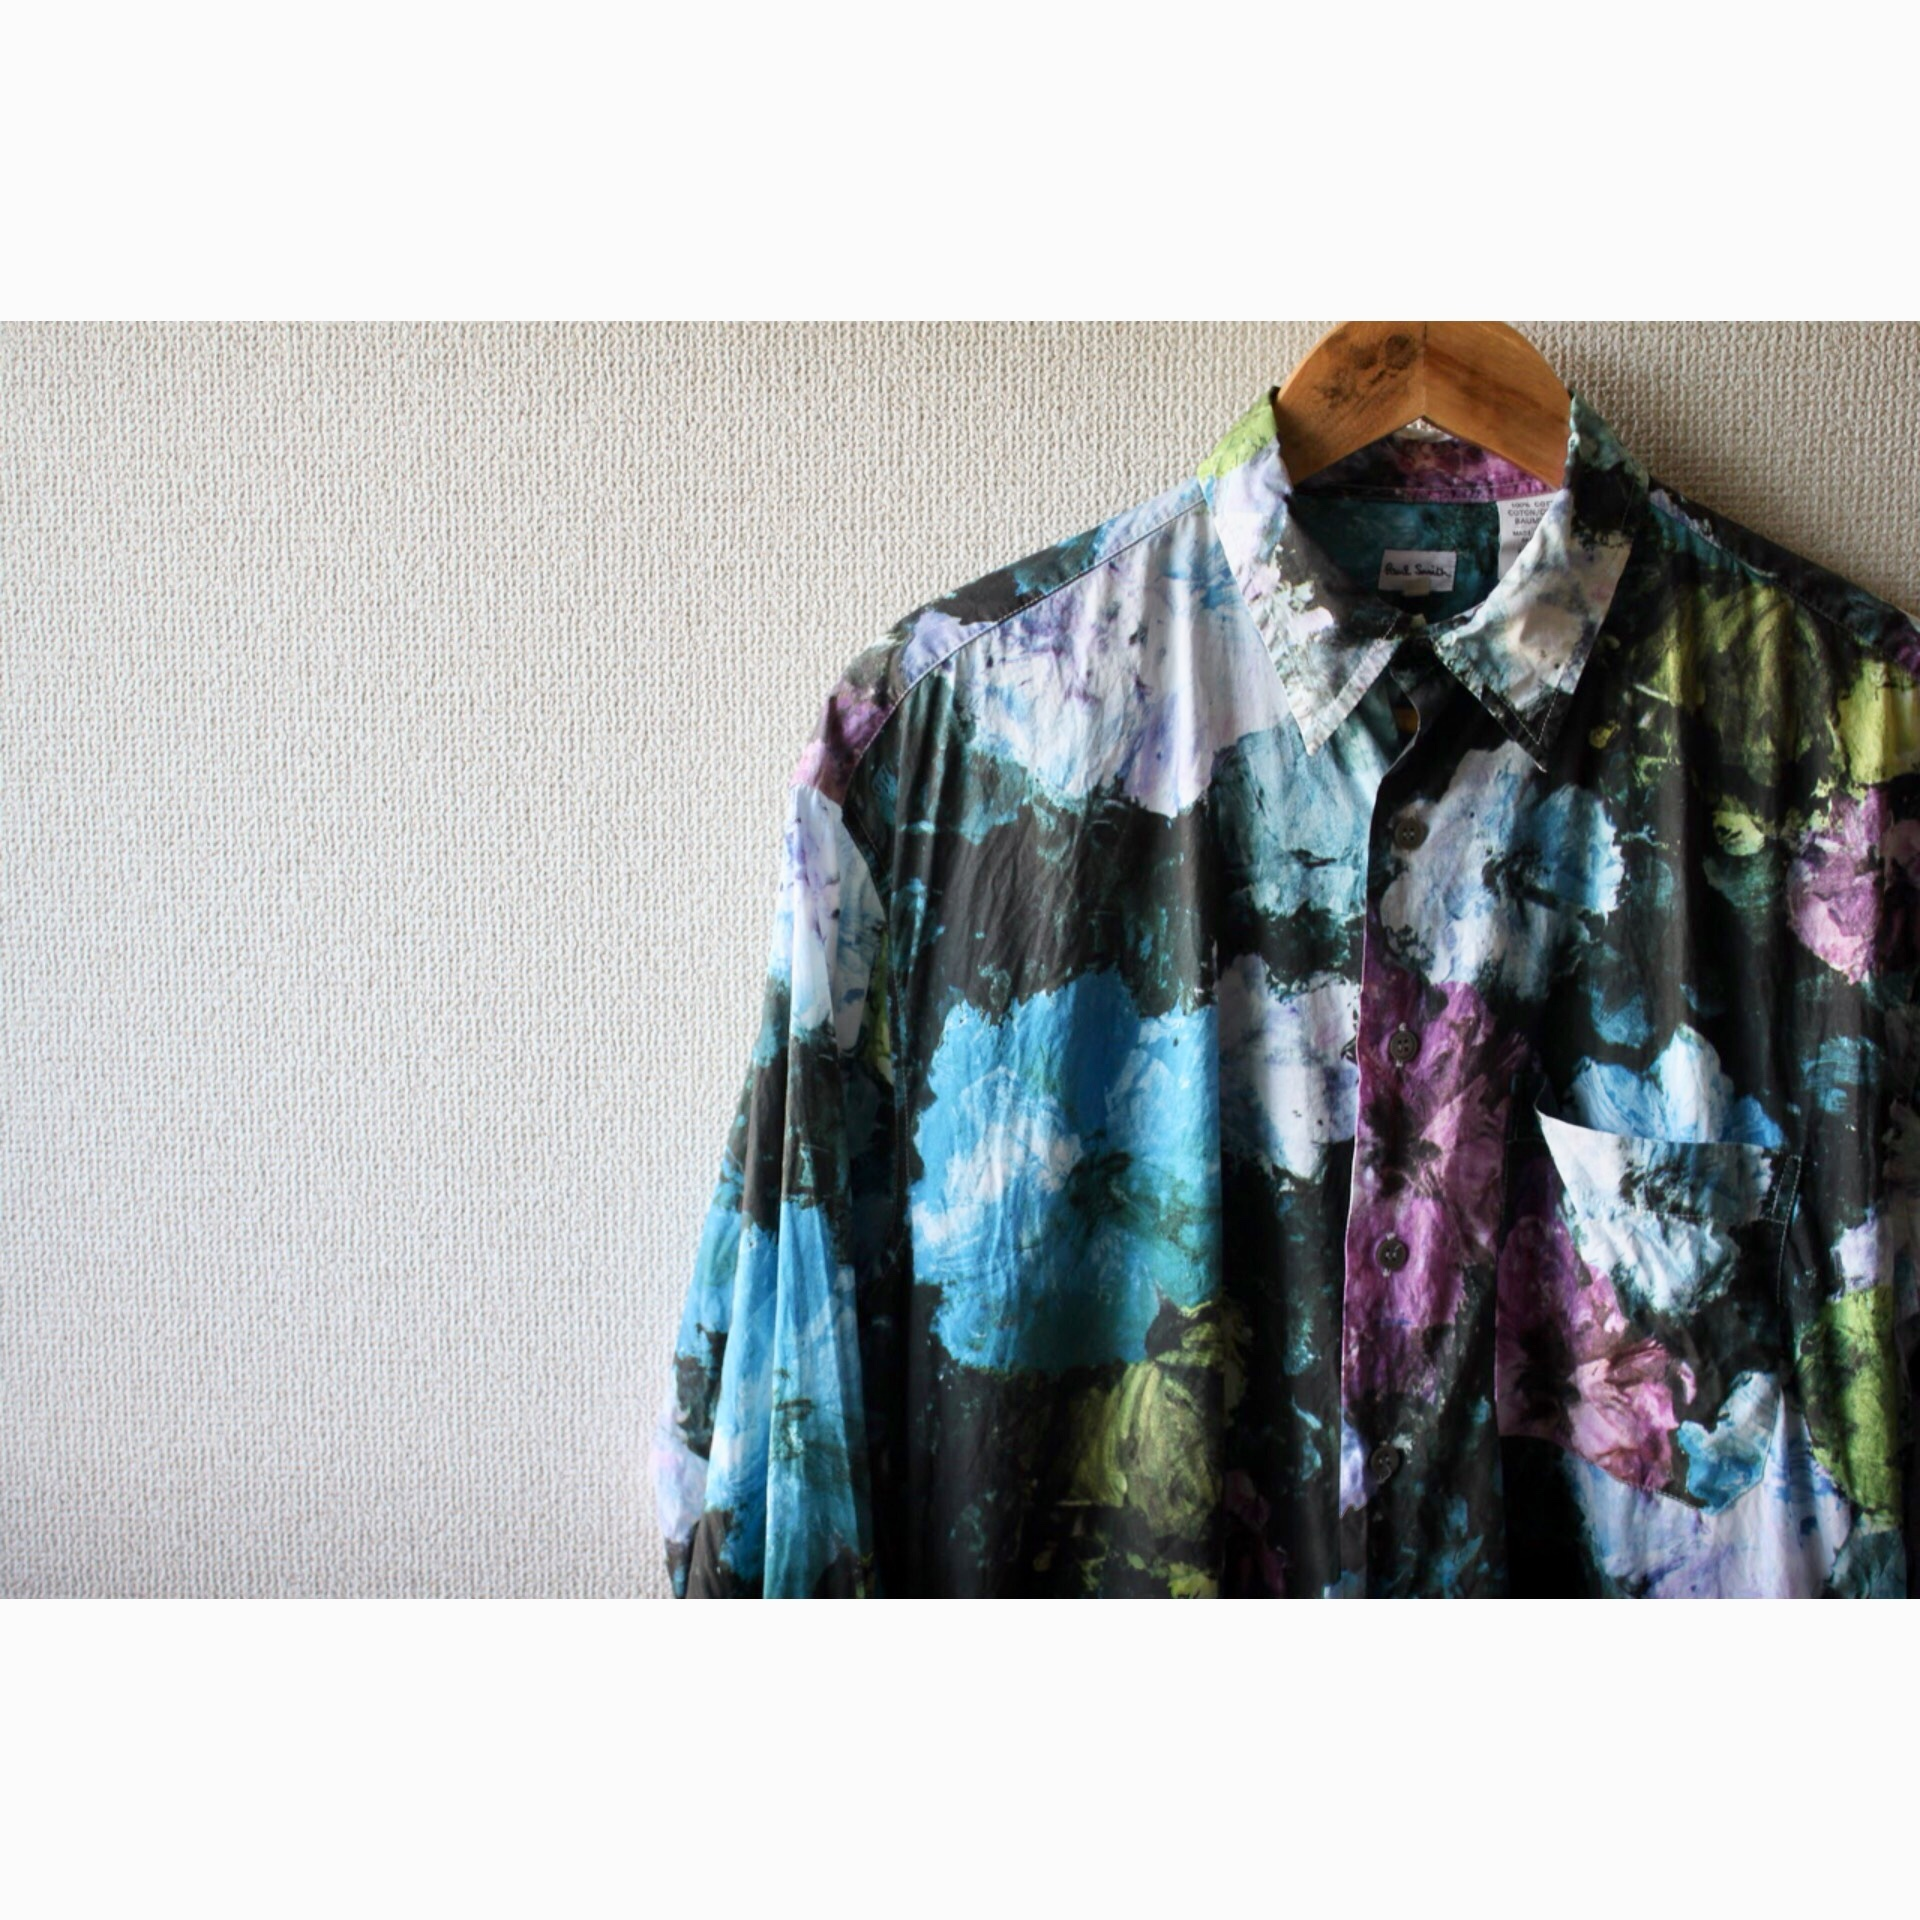 Paul Smith flower print shirt